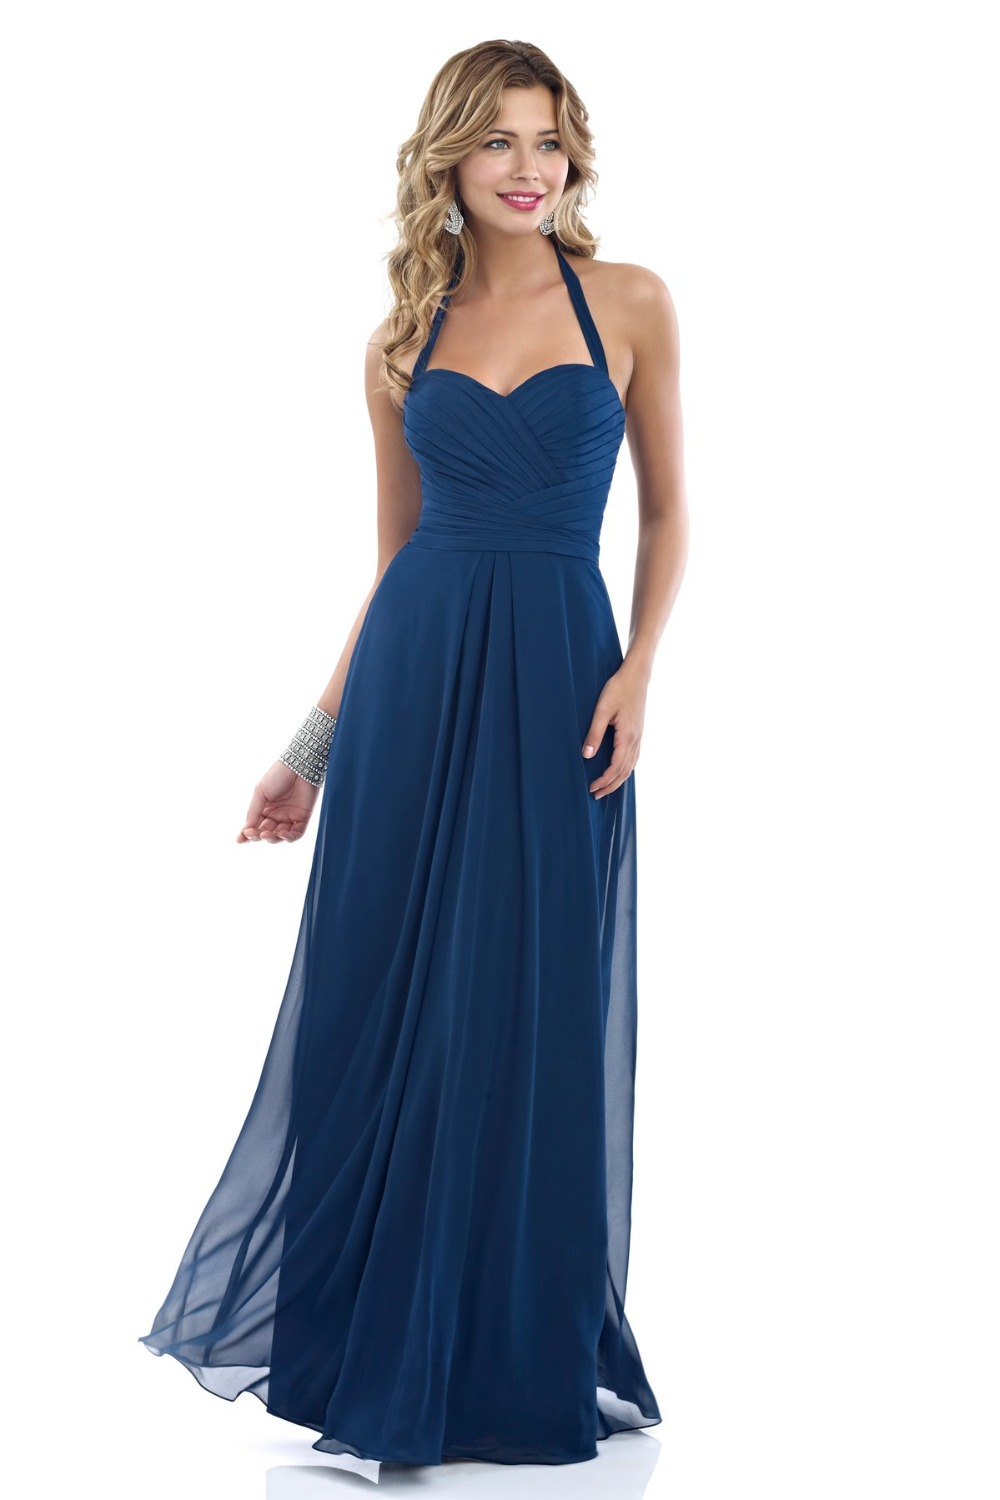 Long floor length navy blue bridesmaid dresses in chiffon for Aline halter wedding dresses